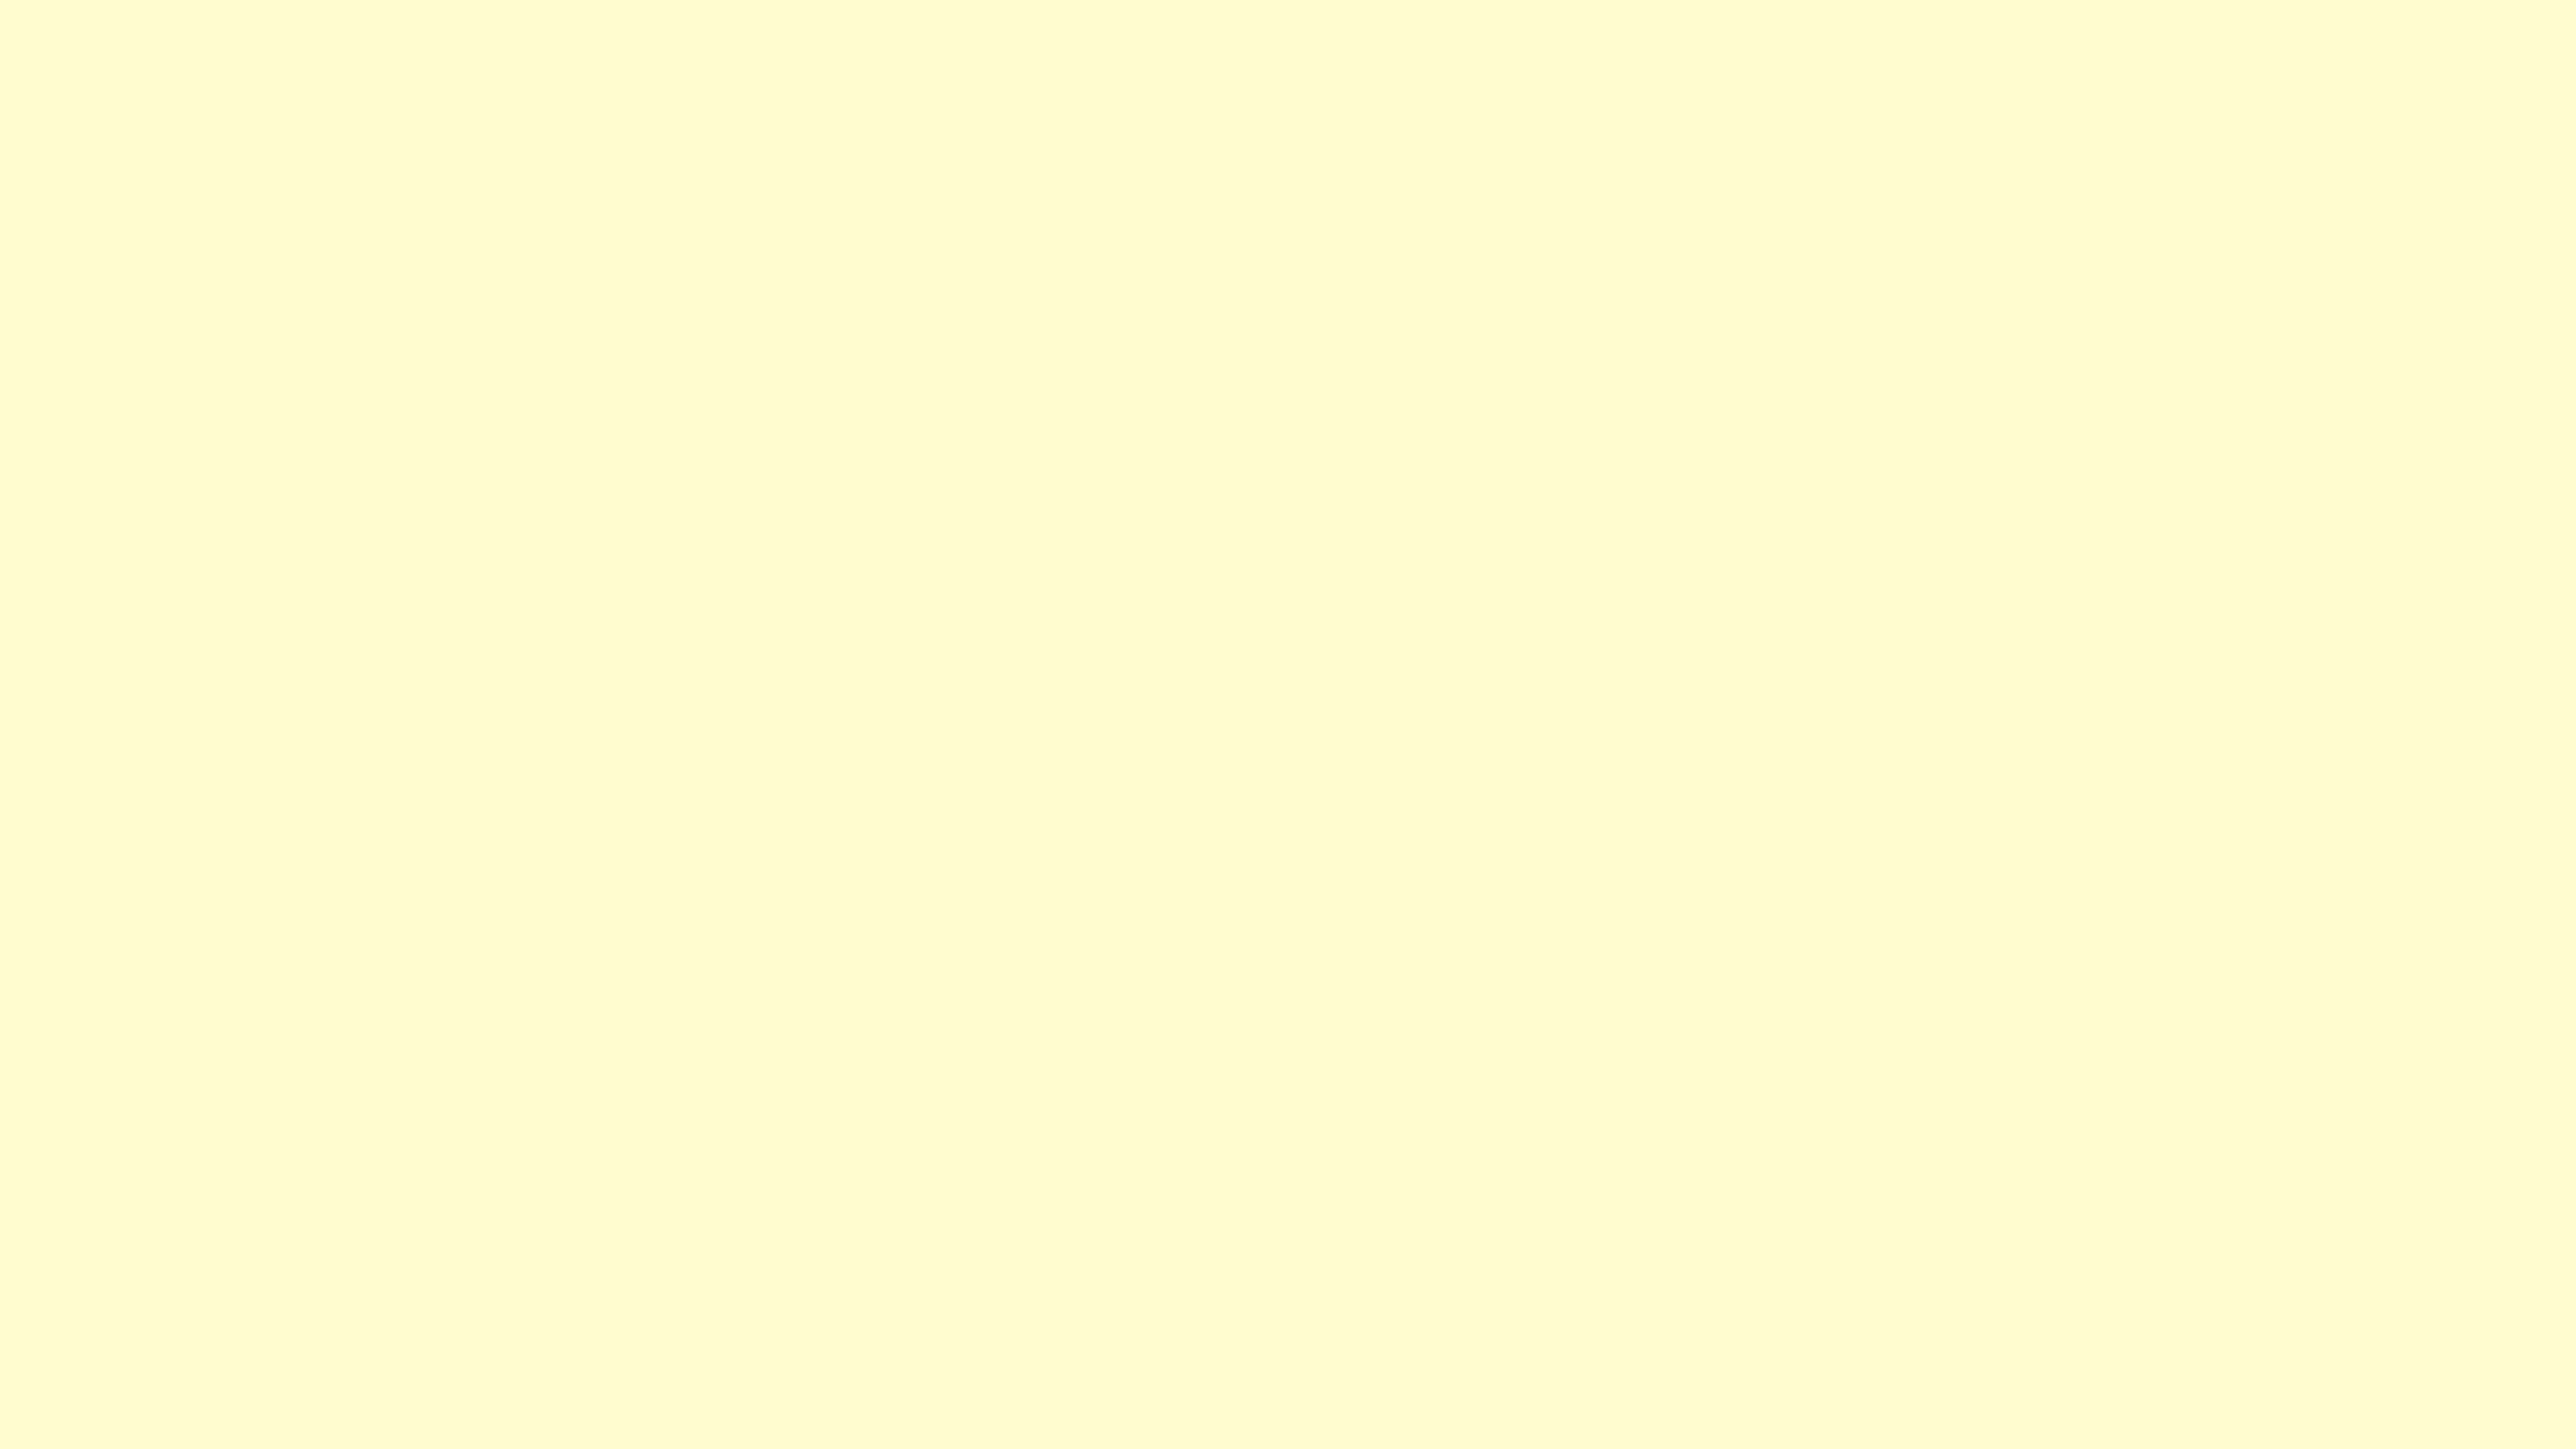 5120x2880 Cream Solid Color Background